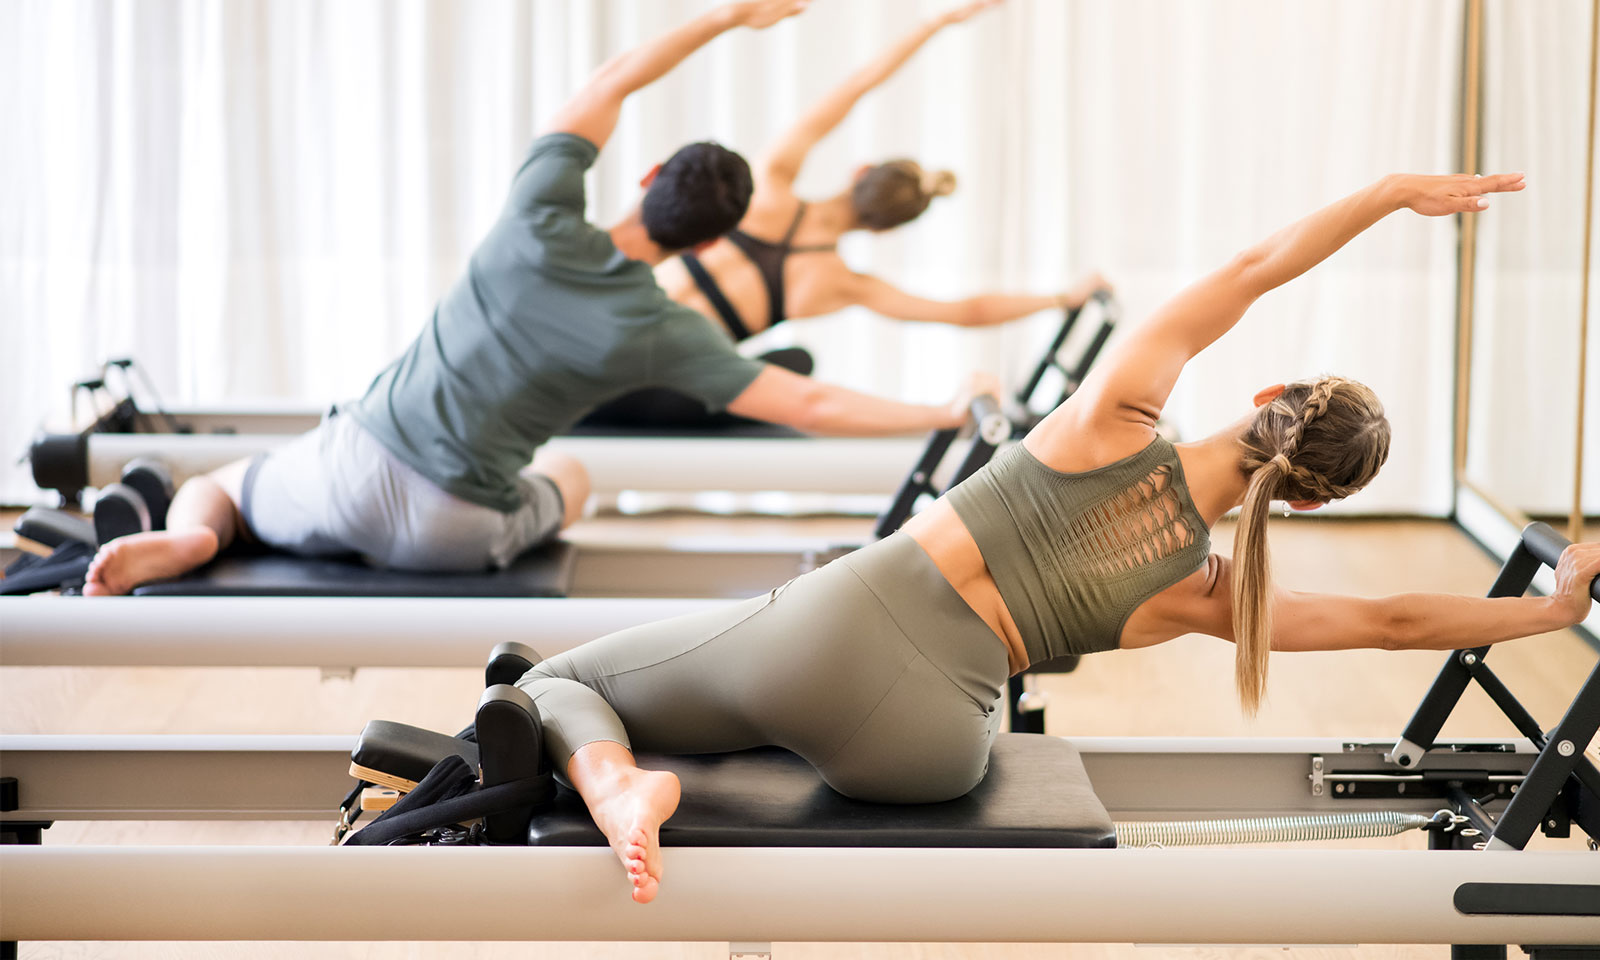 Three people exercising with their left arm up in the air on pilates exercise equipment at Institute of Awareness & Movement, Maui.